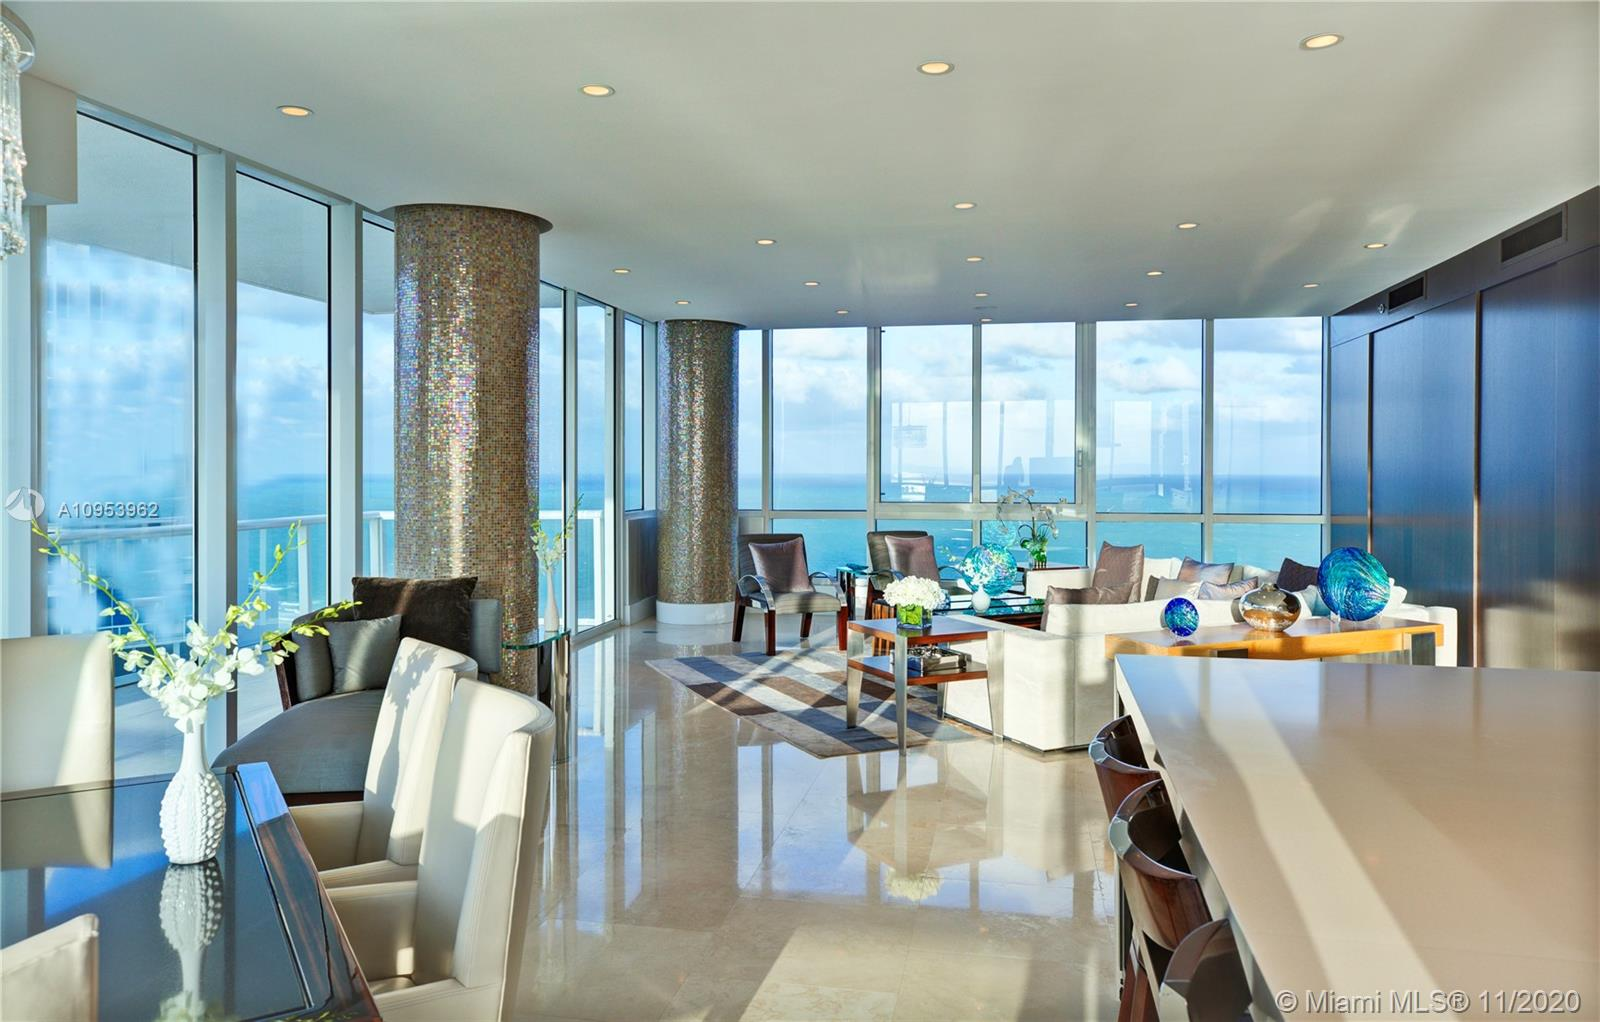 100 S Pointe Dr, Unit #3307 Luxury Real Estate